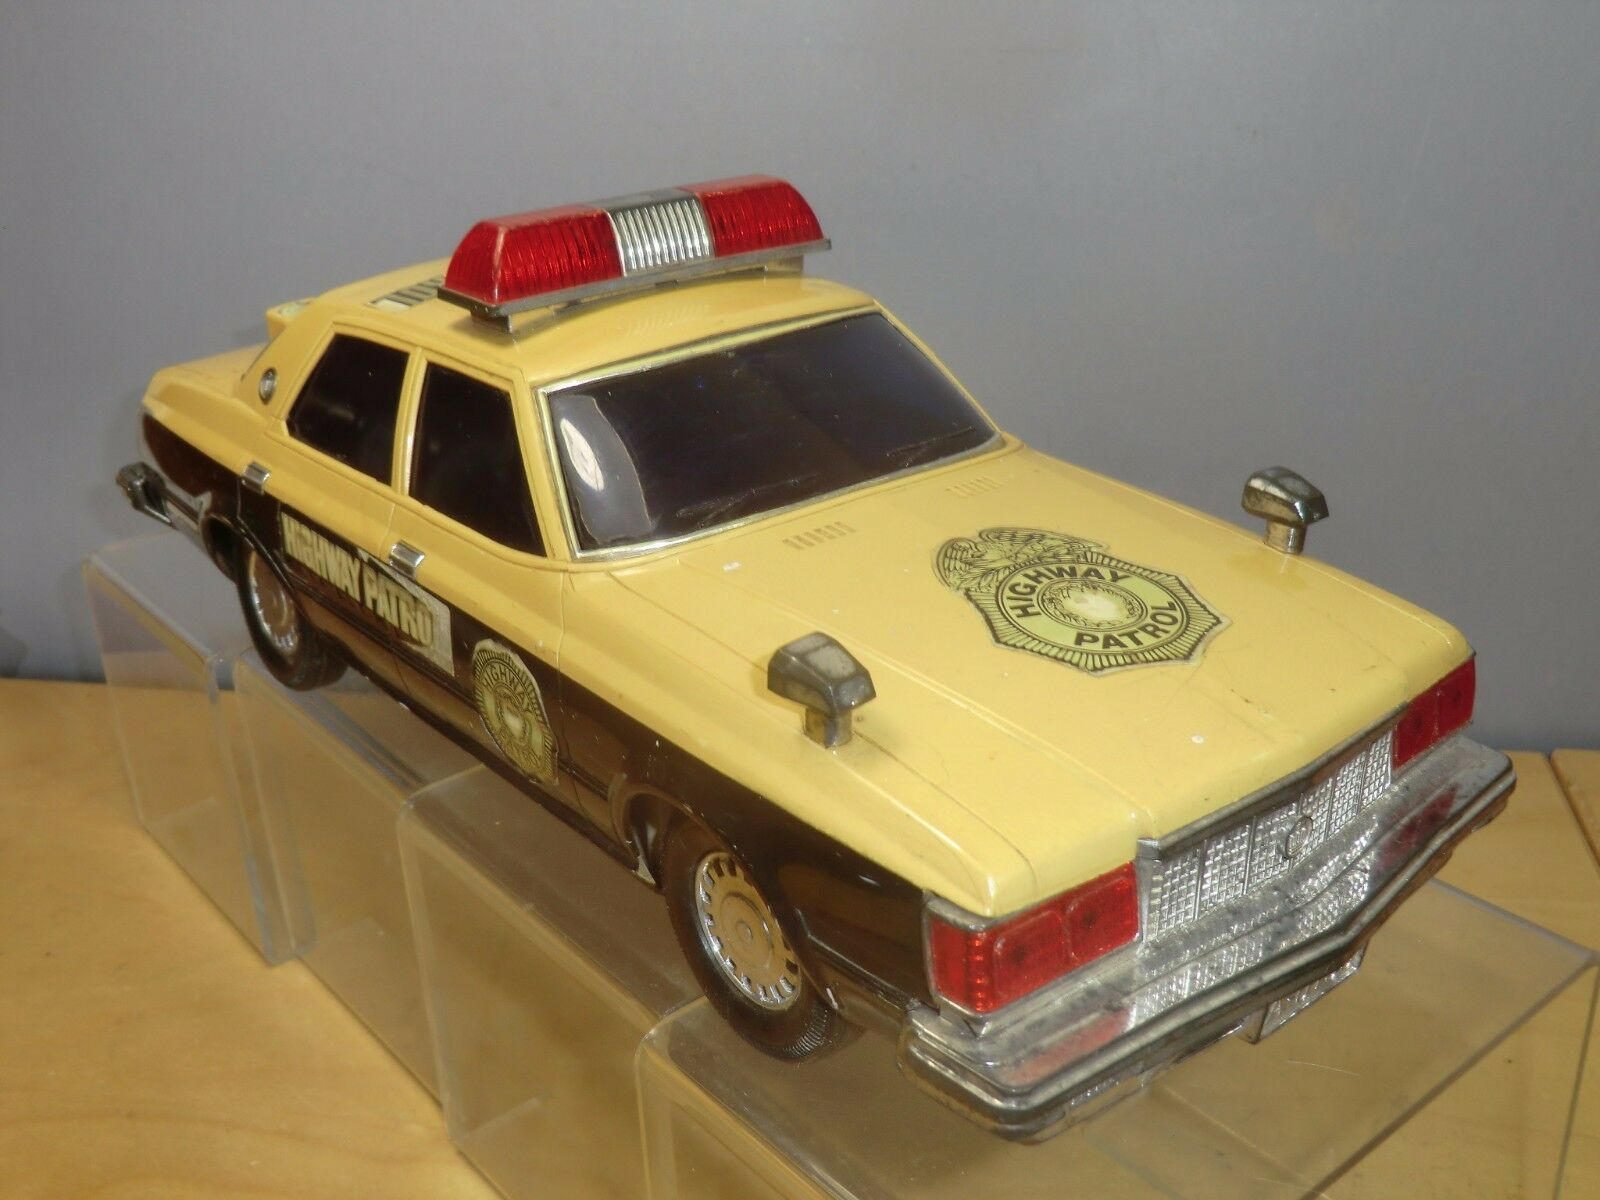 VINTAGE BATTERY OPERATED  MODEL OF   CROWN SEDAN   HIGHWAY PATROL POLICE CAR